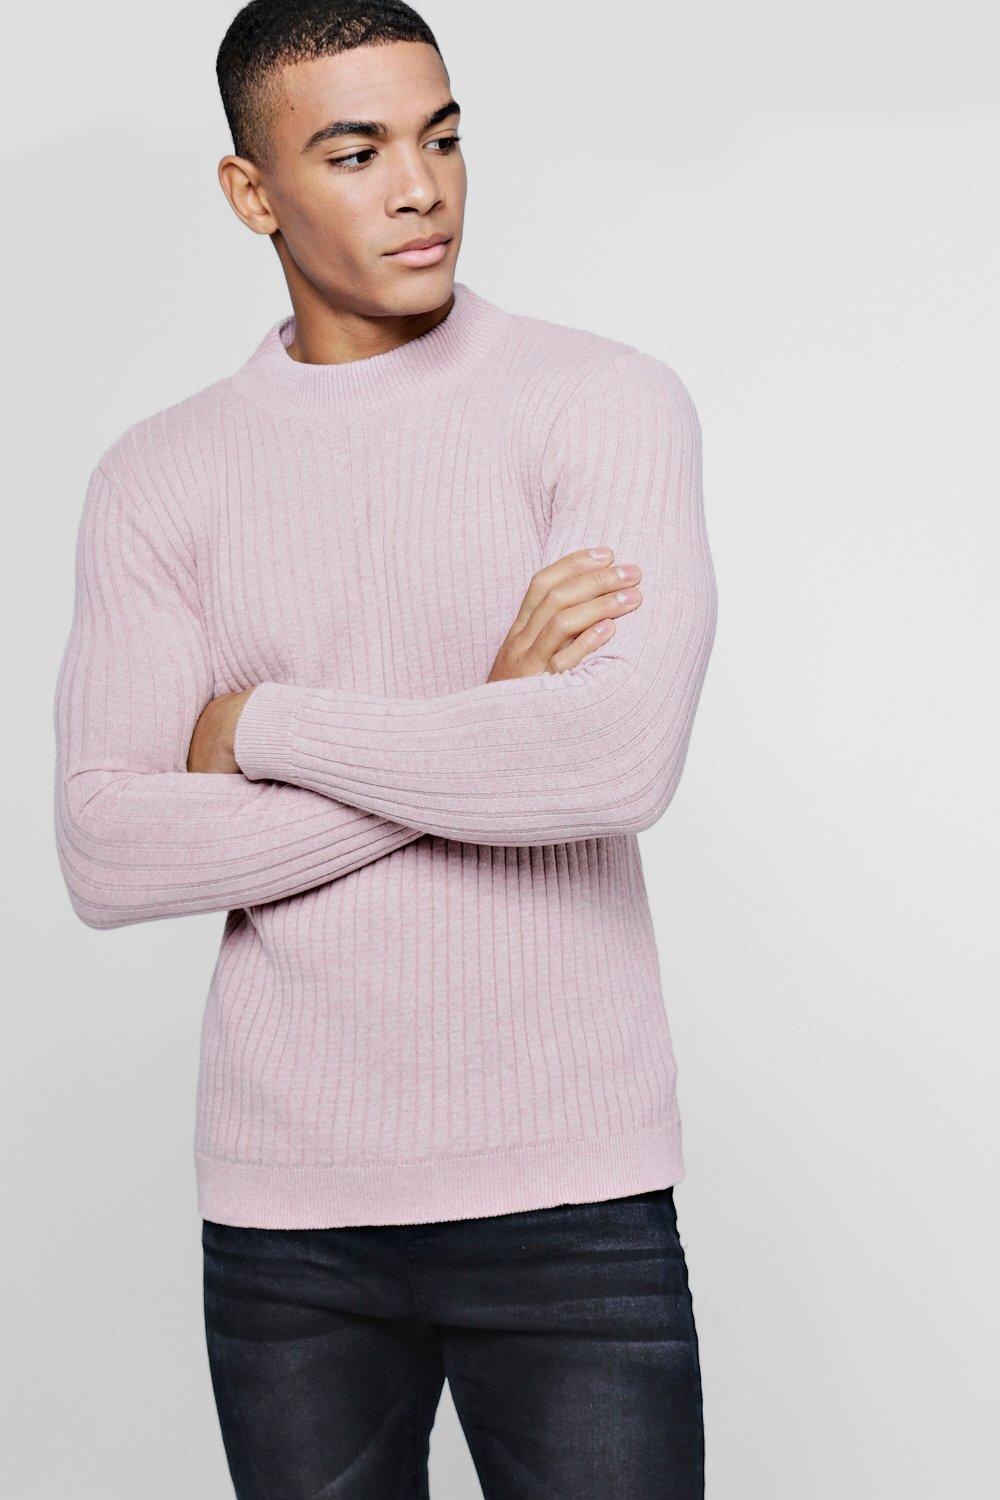 boohooMAN dusky pink Muscle Fit Ribbed Turtle Neck Jumper